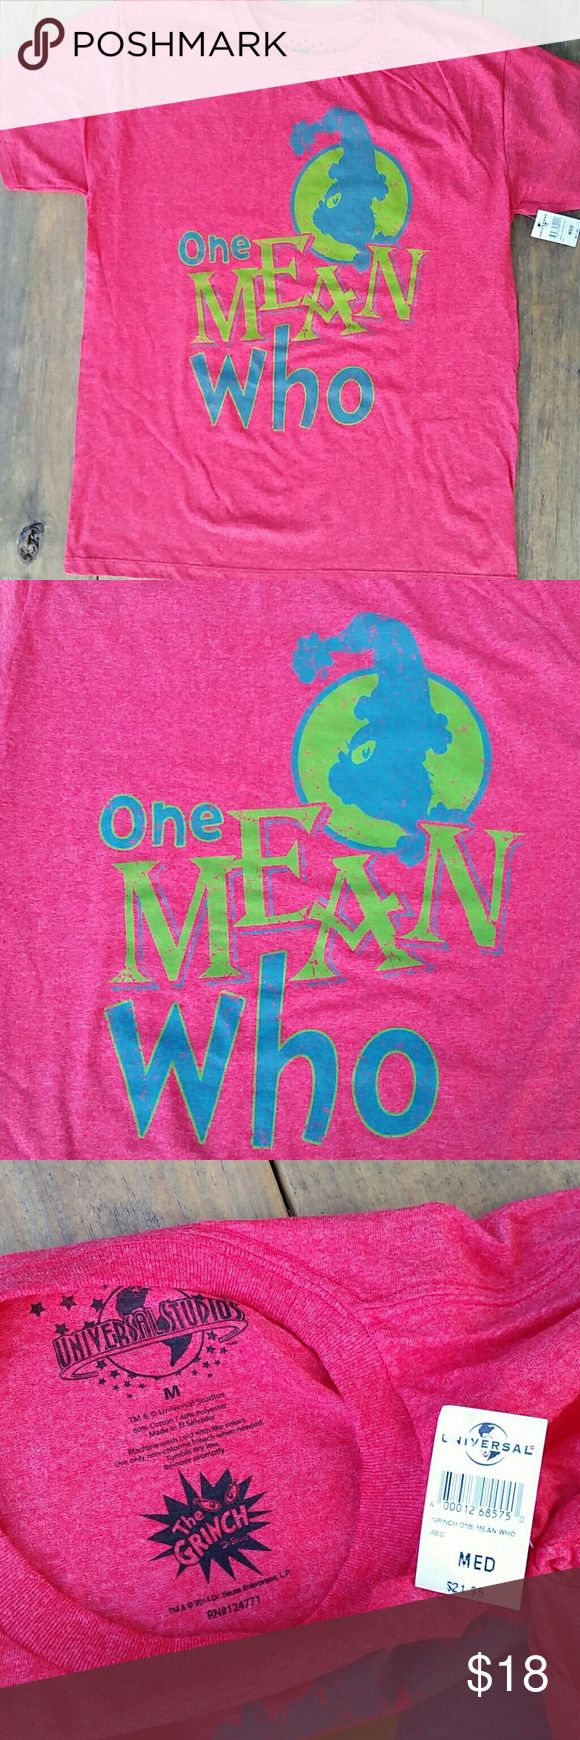 "The Grinch 'One Mean Who' Red Christmas T-Shirt This shirt is brand new with tag from Seuss Landing at Universal Orlando's Islands of Adventure. It is a heathered red color with ""One Mean Who"" and a picture of the Grinch from Dr. Suess' How the Grinch Stole Christmas in 2 different shades of green. I an not sure, but I believe it is a unisex shirt. It is about 27 inches long and about 20 inches across from armpit to armpit. The shirt is 60% Cotton and 40% Polyester. The brand is Universal…"